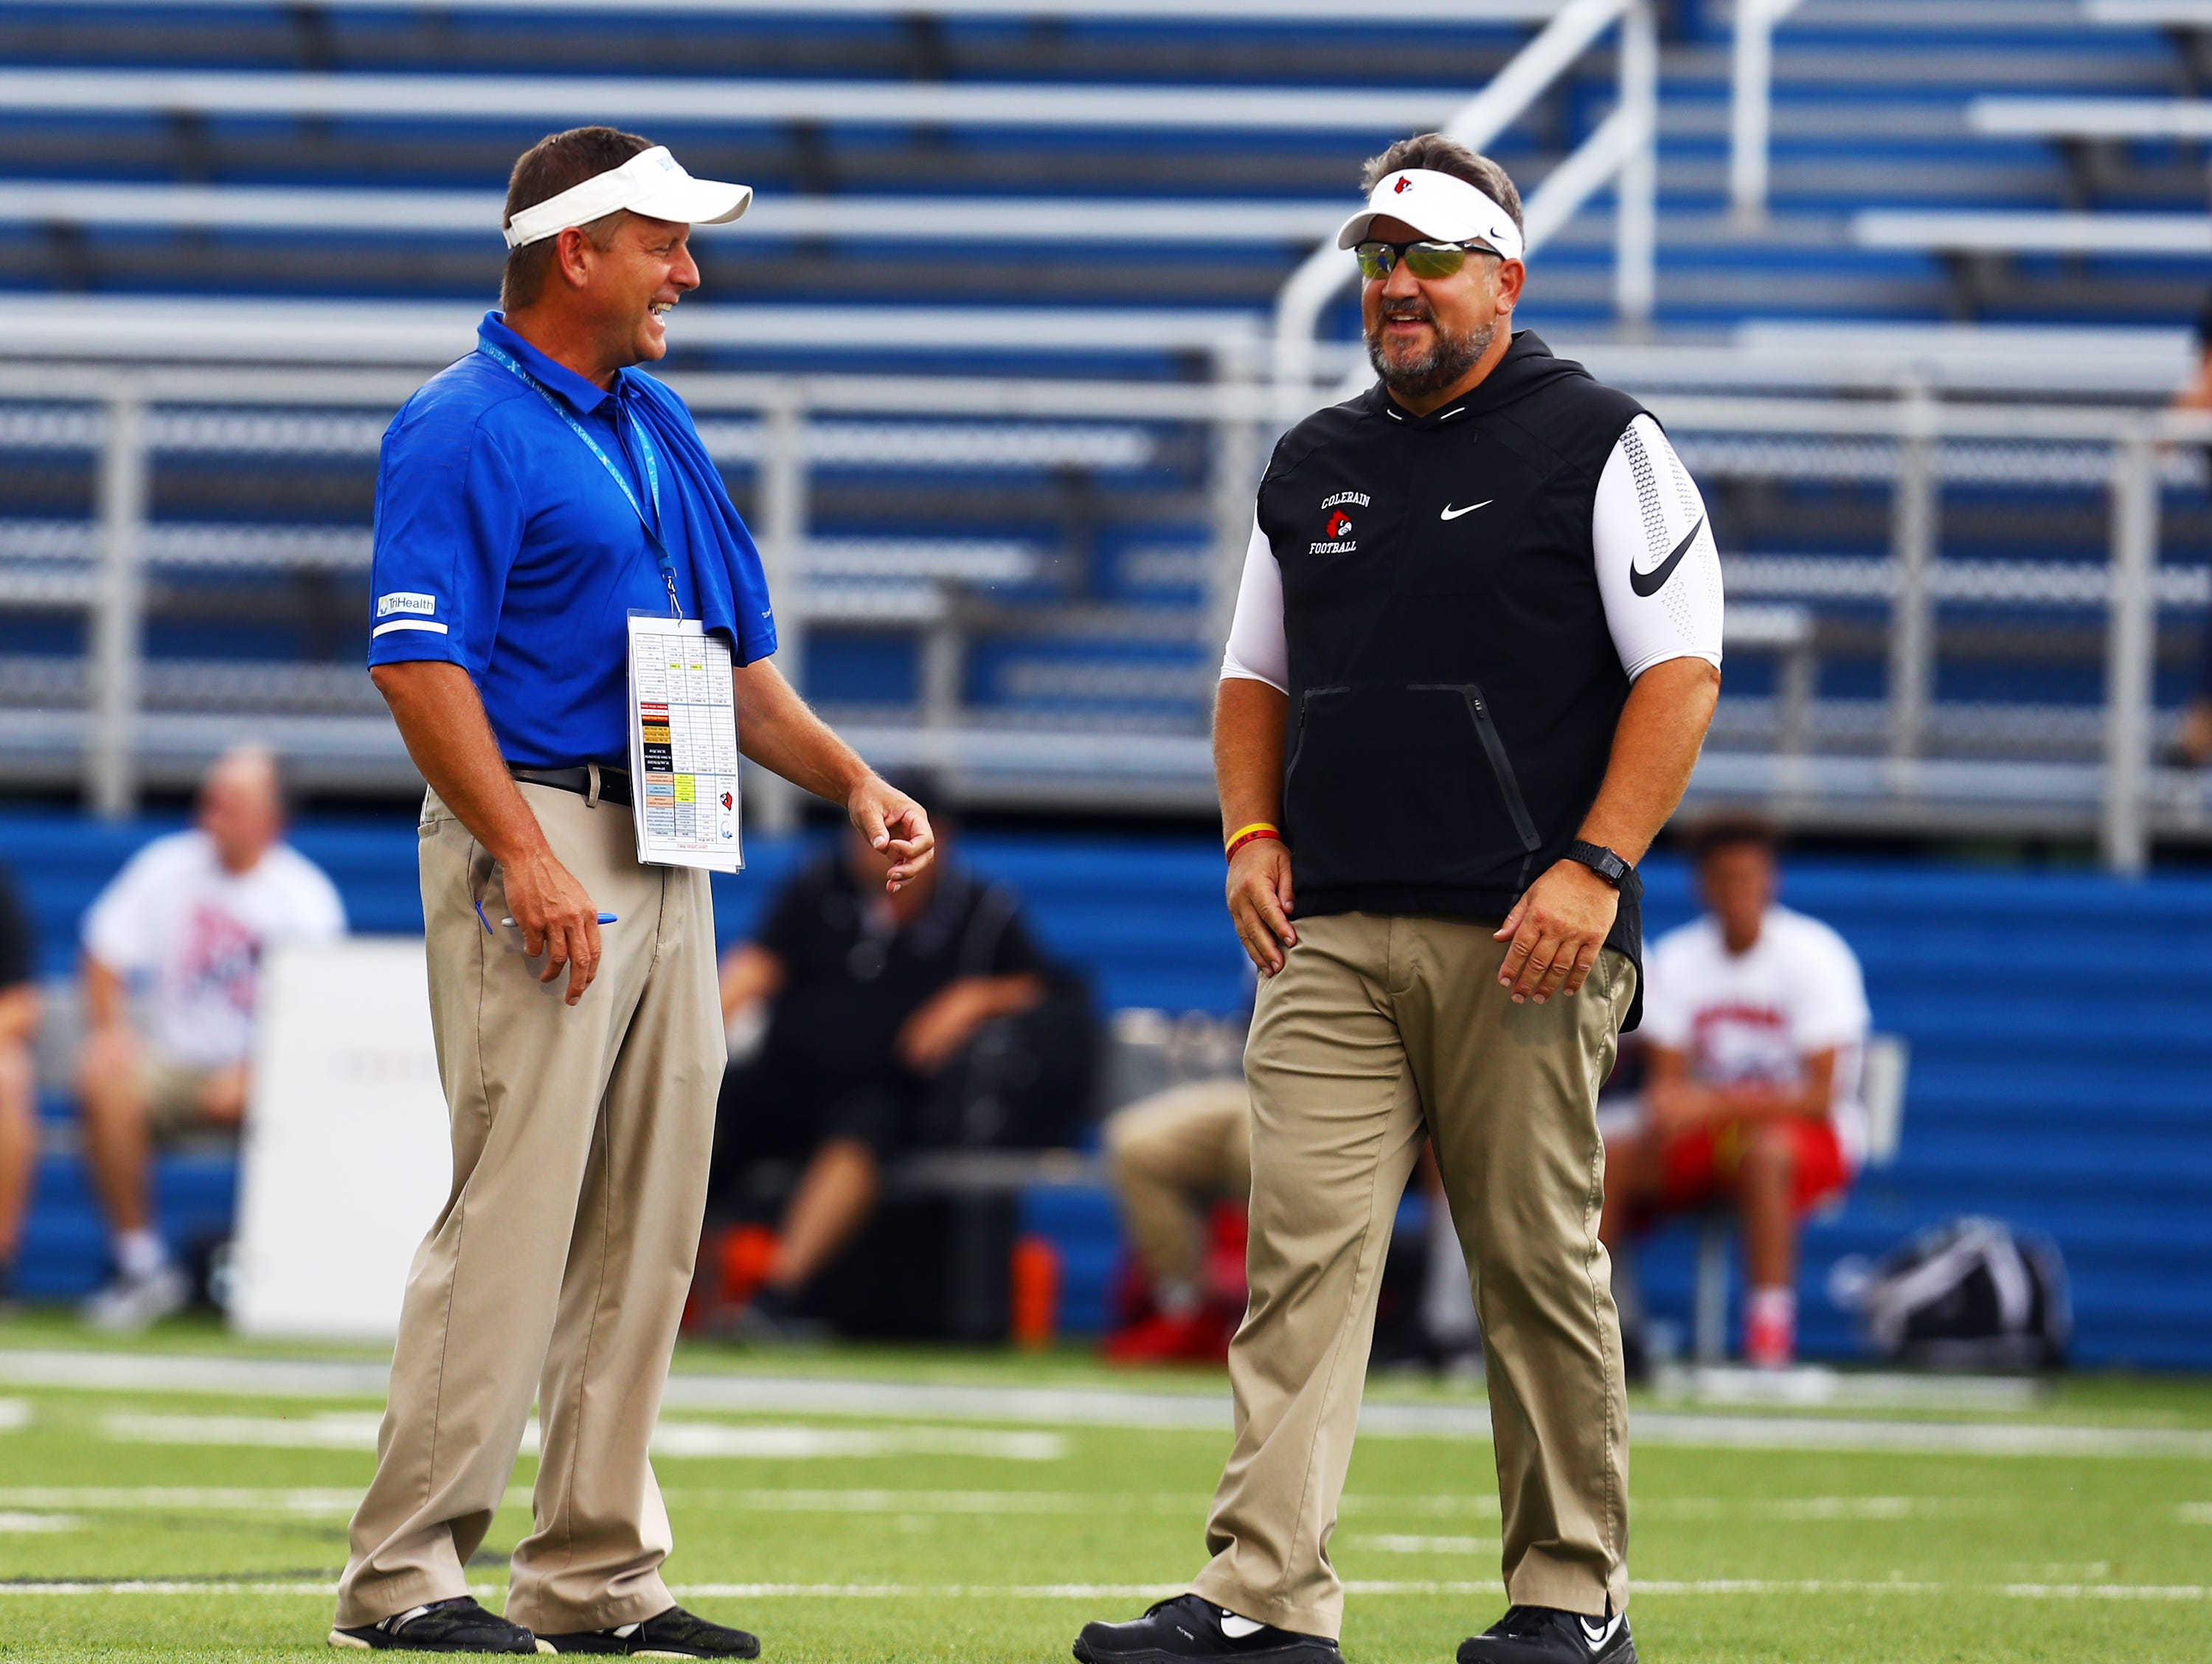 Saint Xavier Head Coach Steve Specht [left] and Colerain Head Coach Tom Bolden meet during pre game activities before the game between the Colerain Cardinals and the Saint Xavier Bombers at Saint Xavier High School.